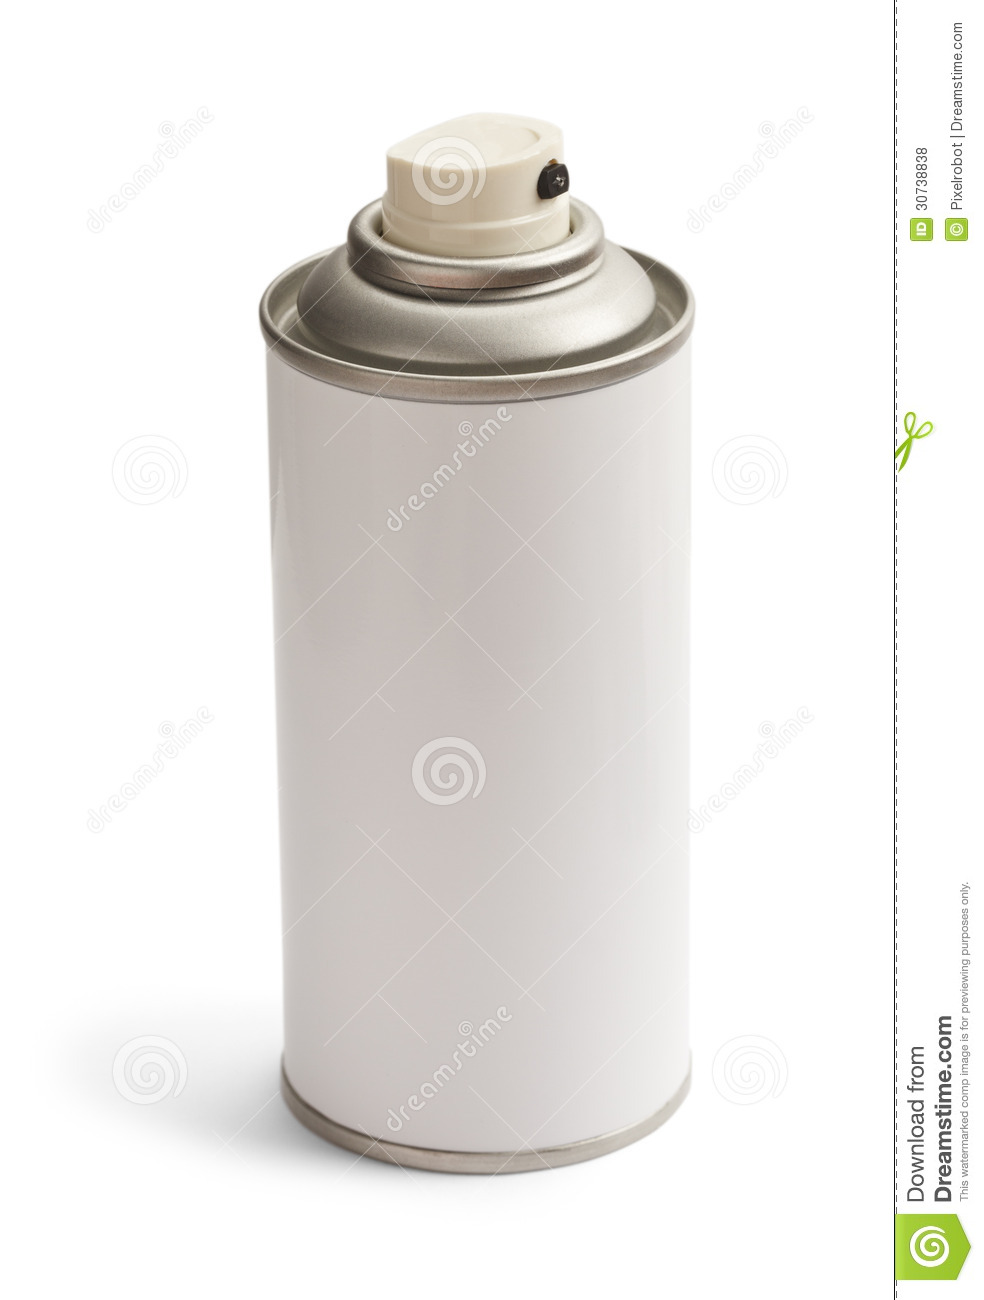 Spray paint can royalty free stock photos image 30738838 Paint with spray can